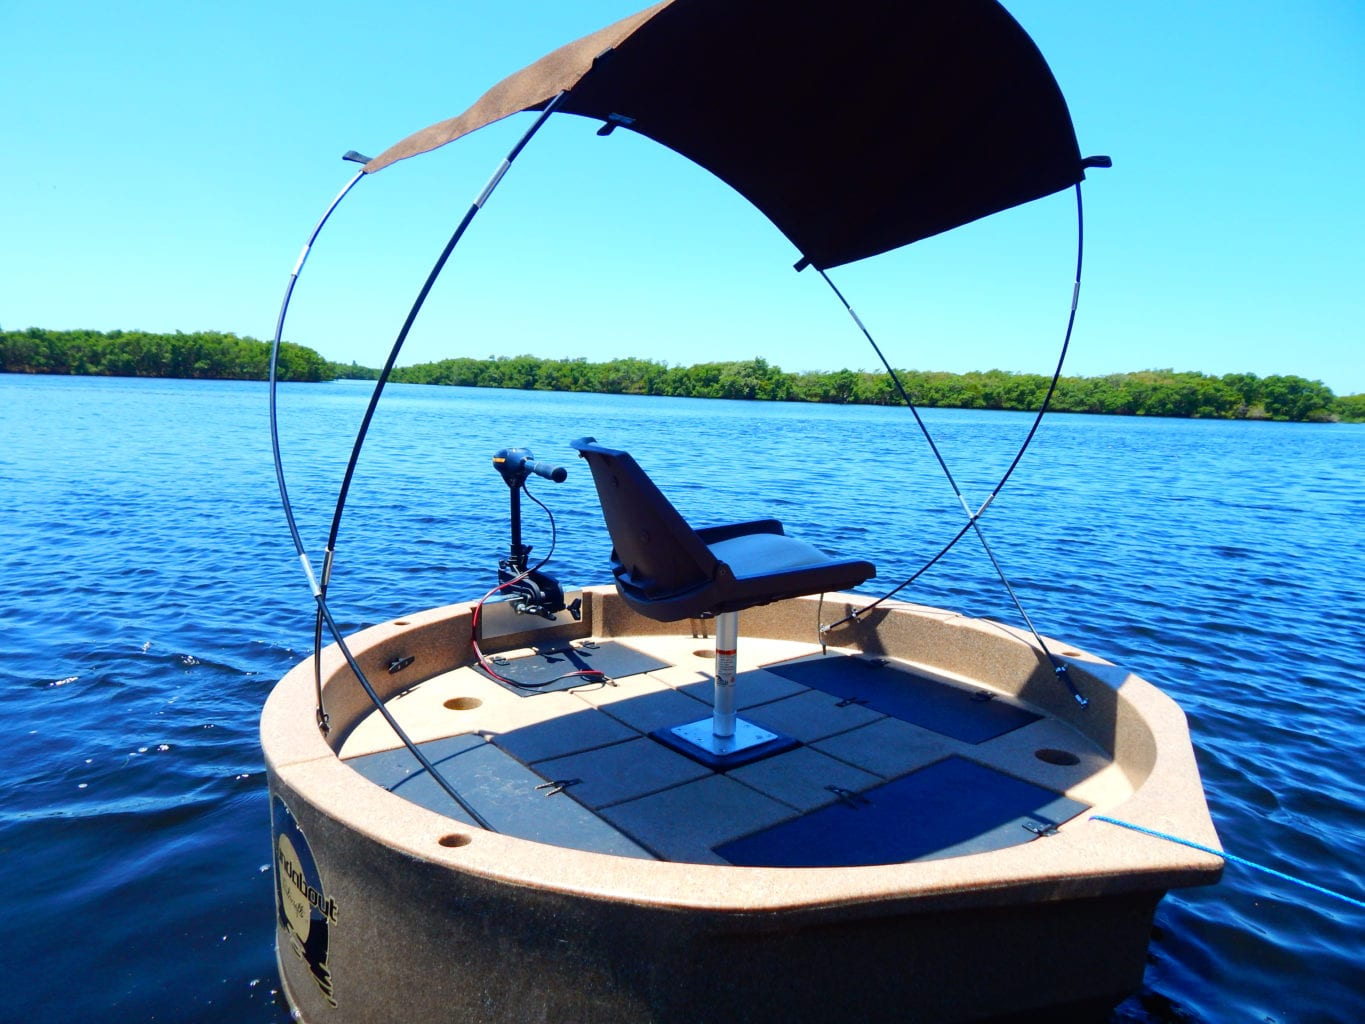 This shows the sunshade installed on a tan colored round boat